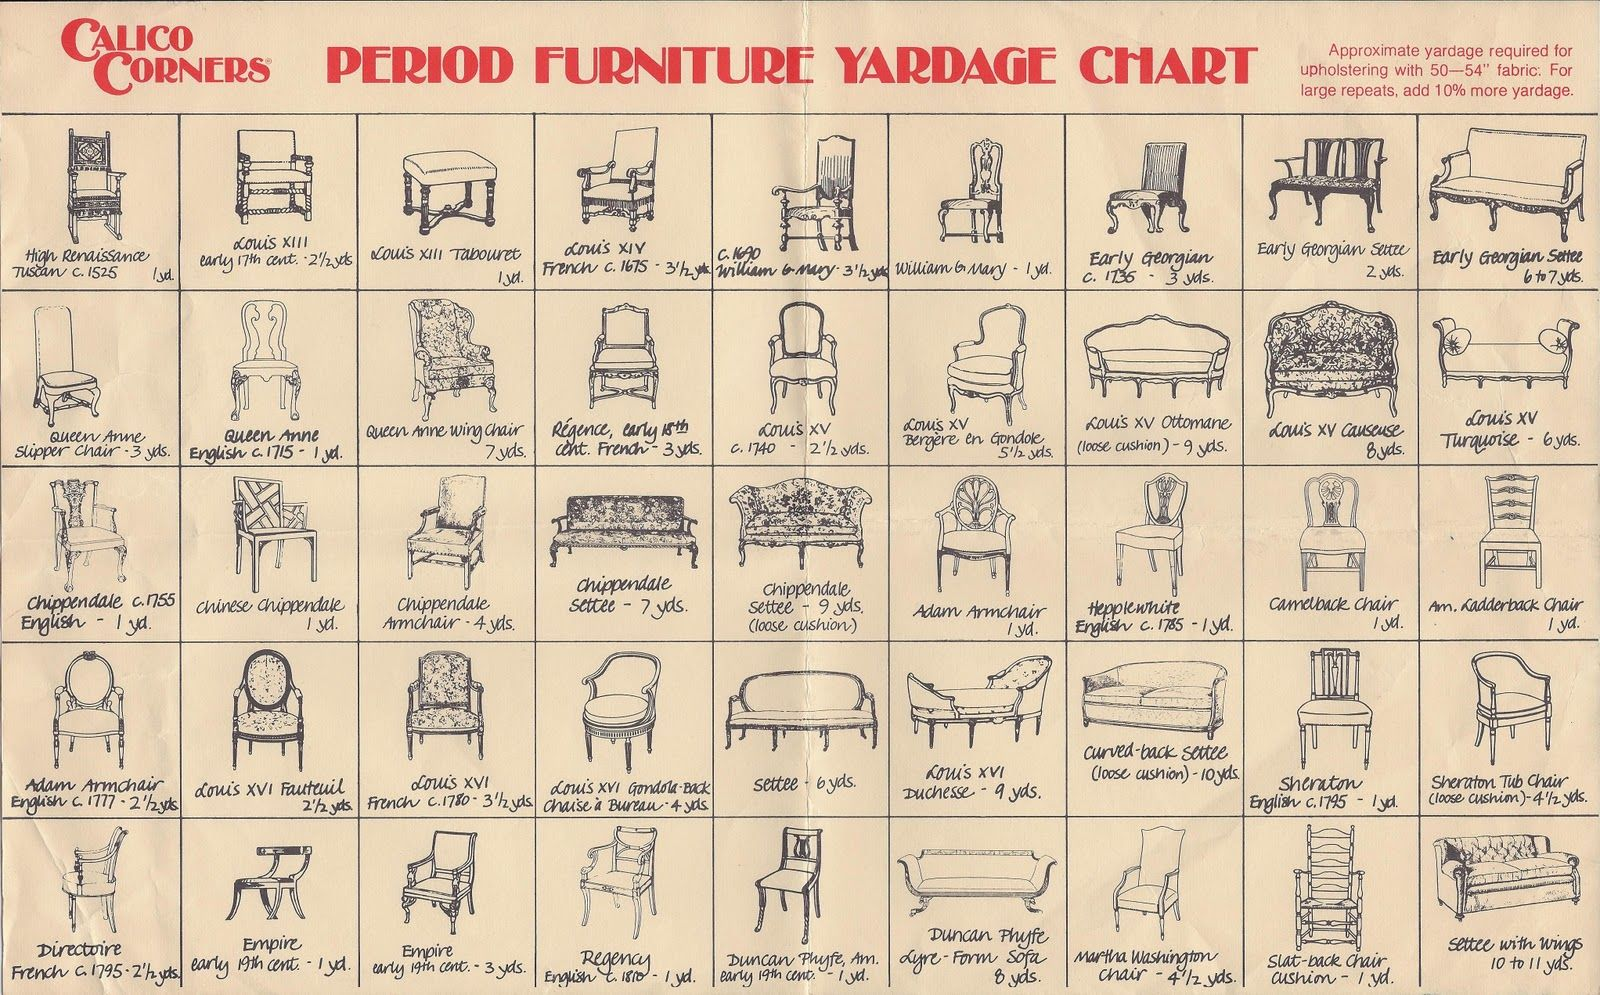 chair antique styles felt pads for chairs furniture period pictures yardage chart